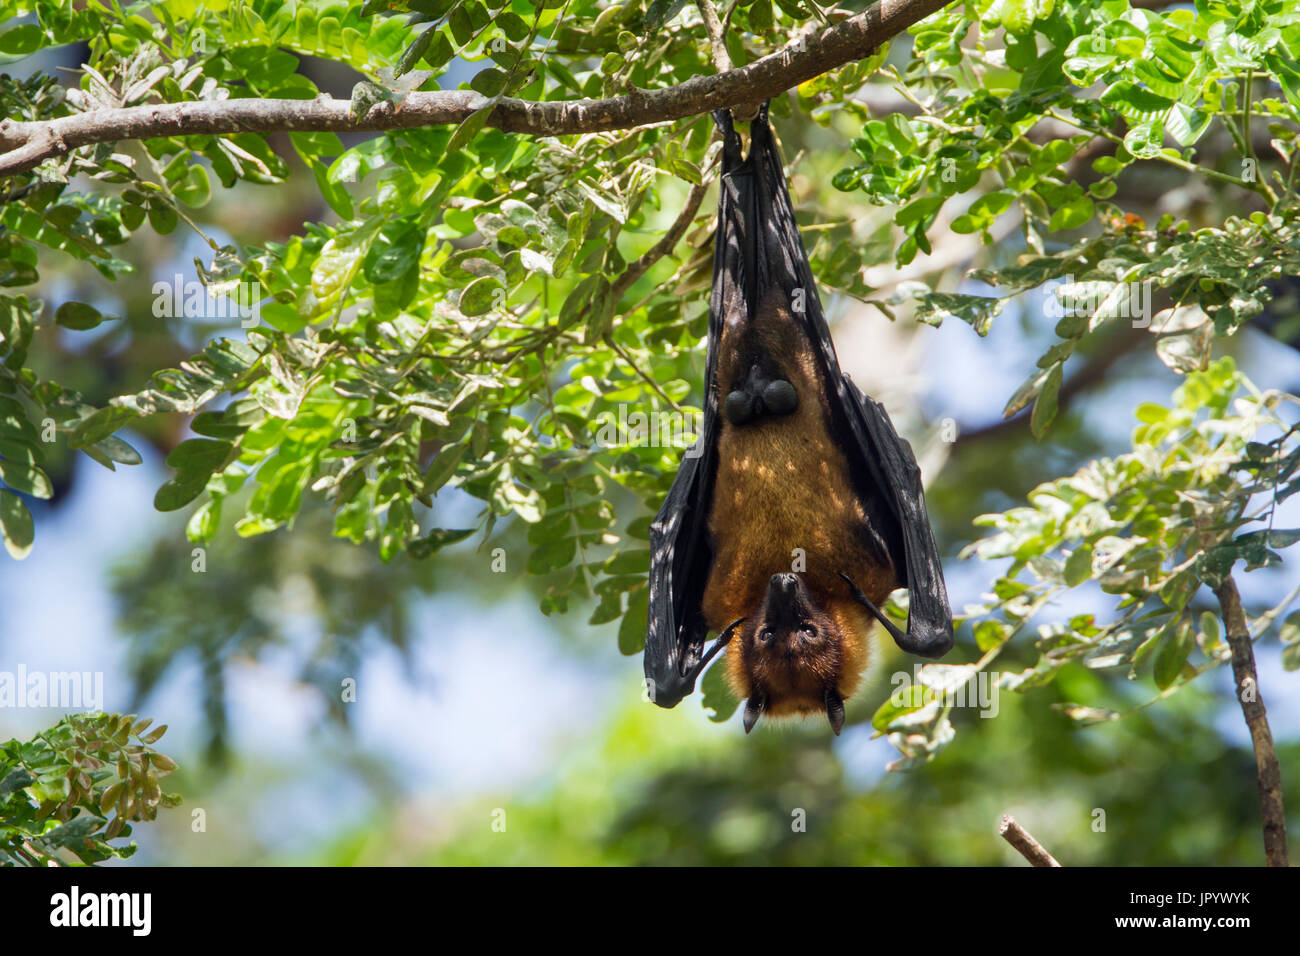 Indian Flying-fox (Pteropus giganteus) suspending, Yala national park, Tissamaharma, Sri Lanka - Stock Image